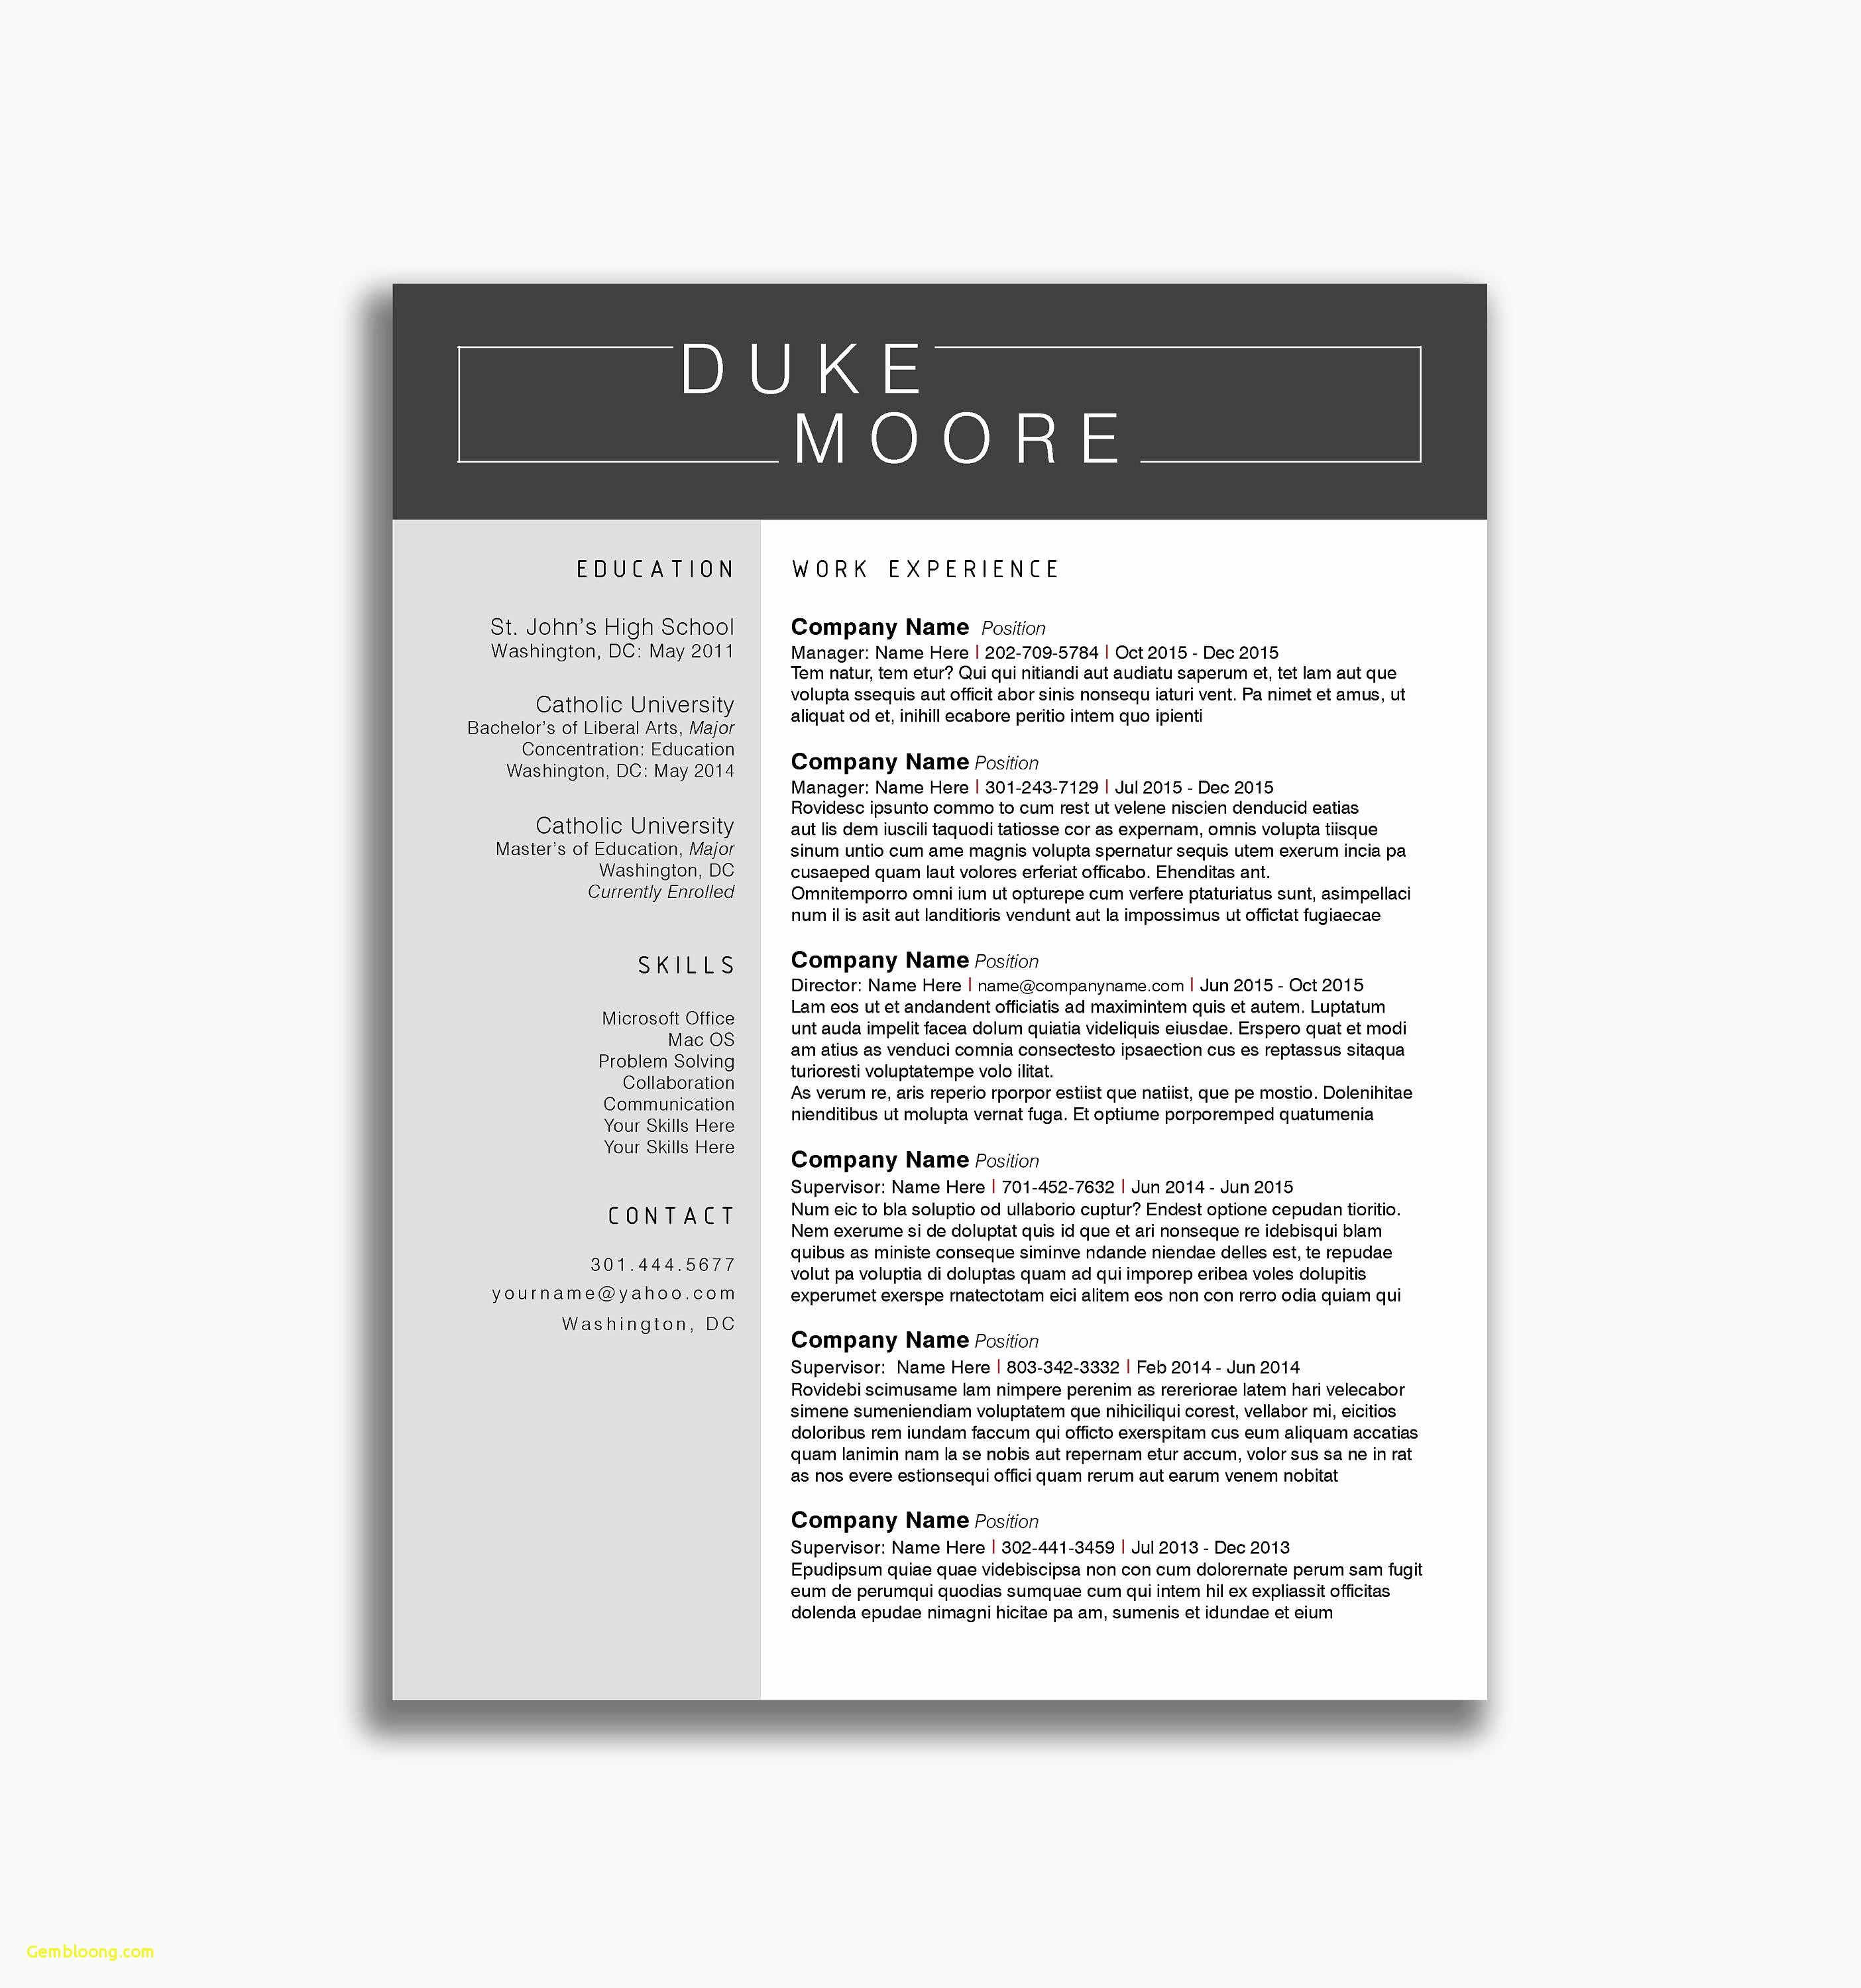 Lawyer Resume Template - Cv Template Ideas Elegant Download Resume Template Beautiful Law